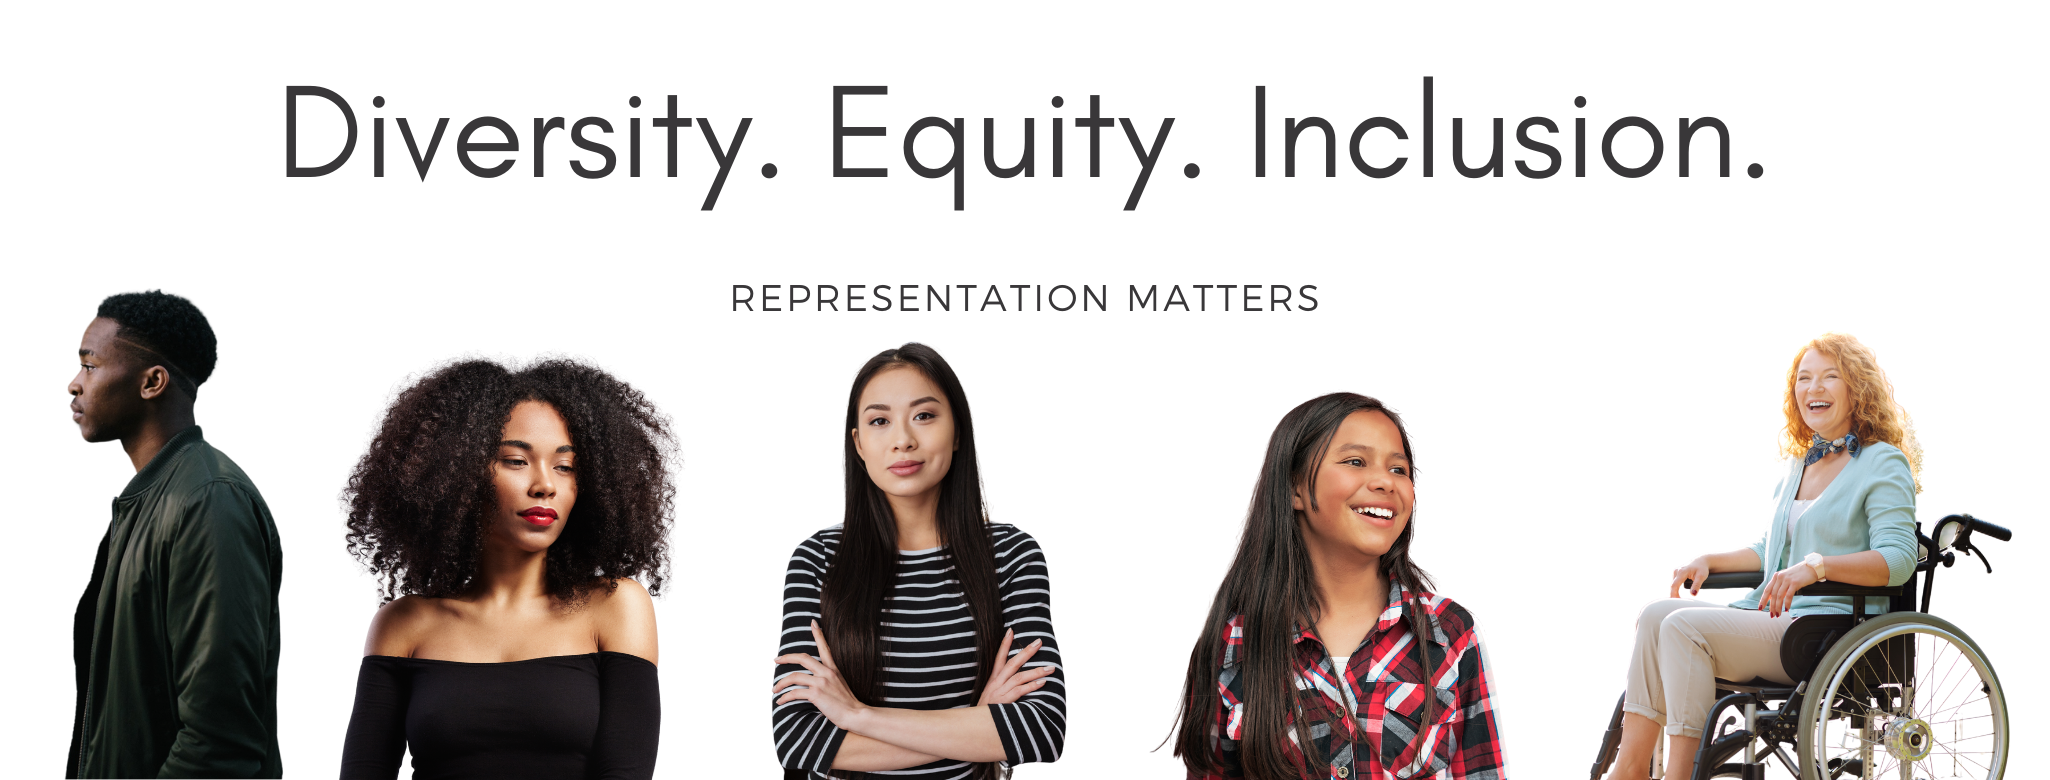 Race, Equity, and Inclusion